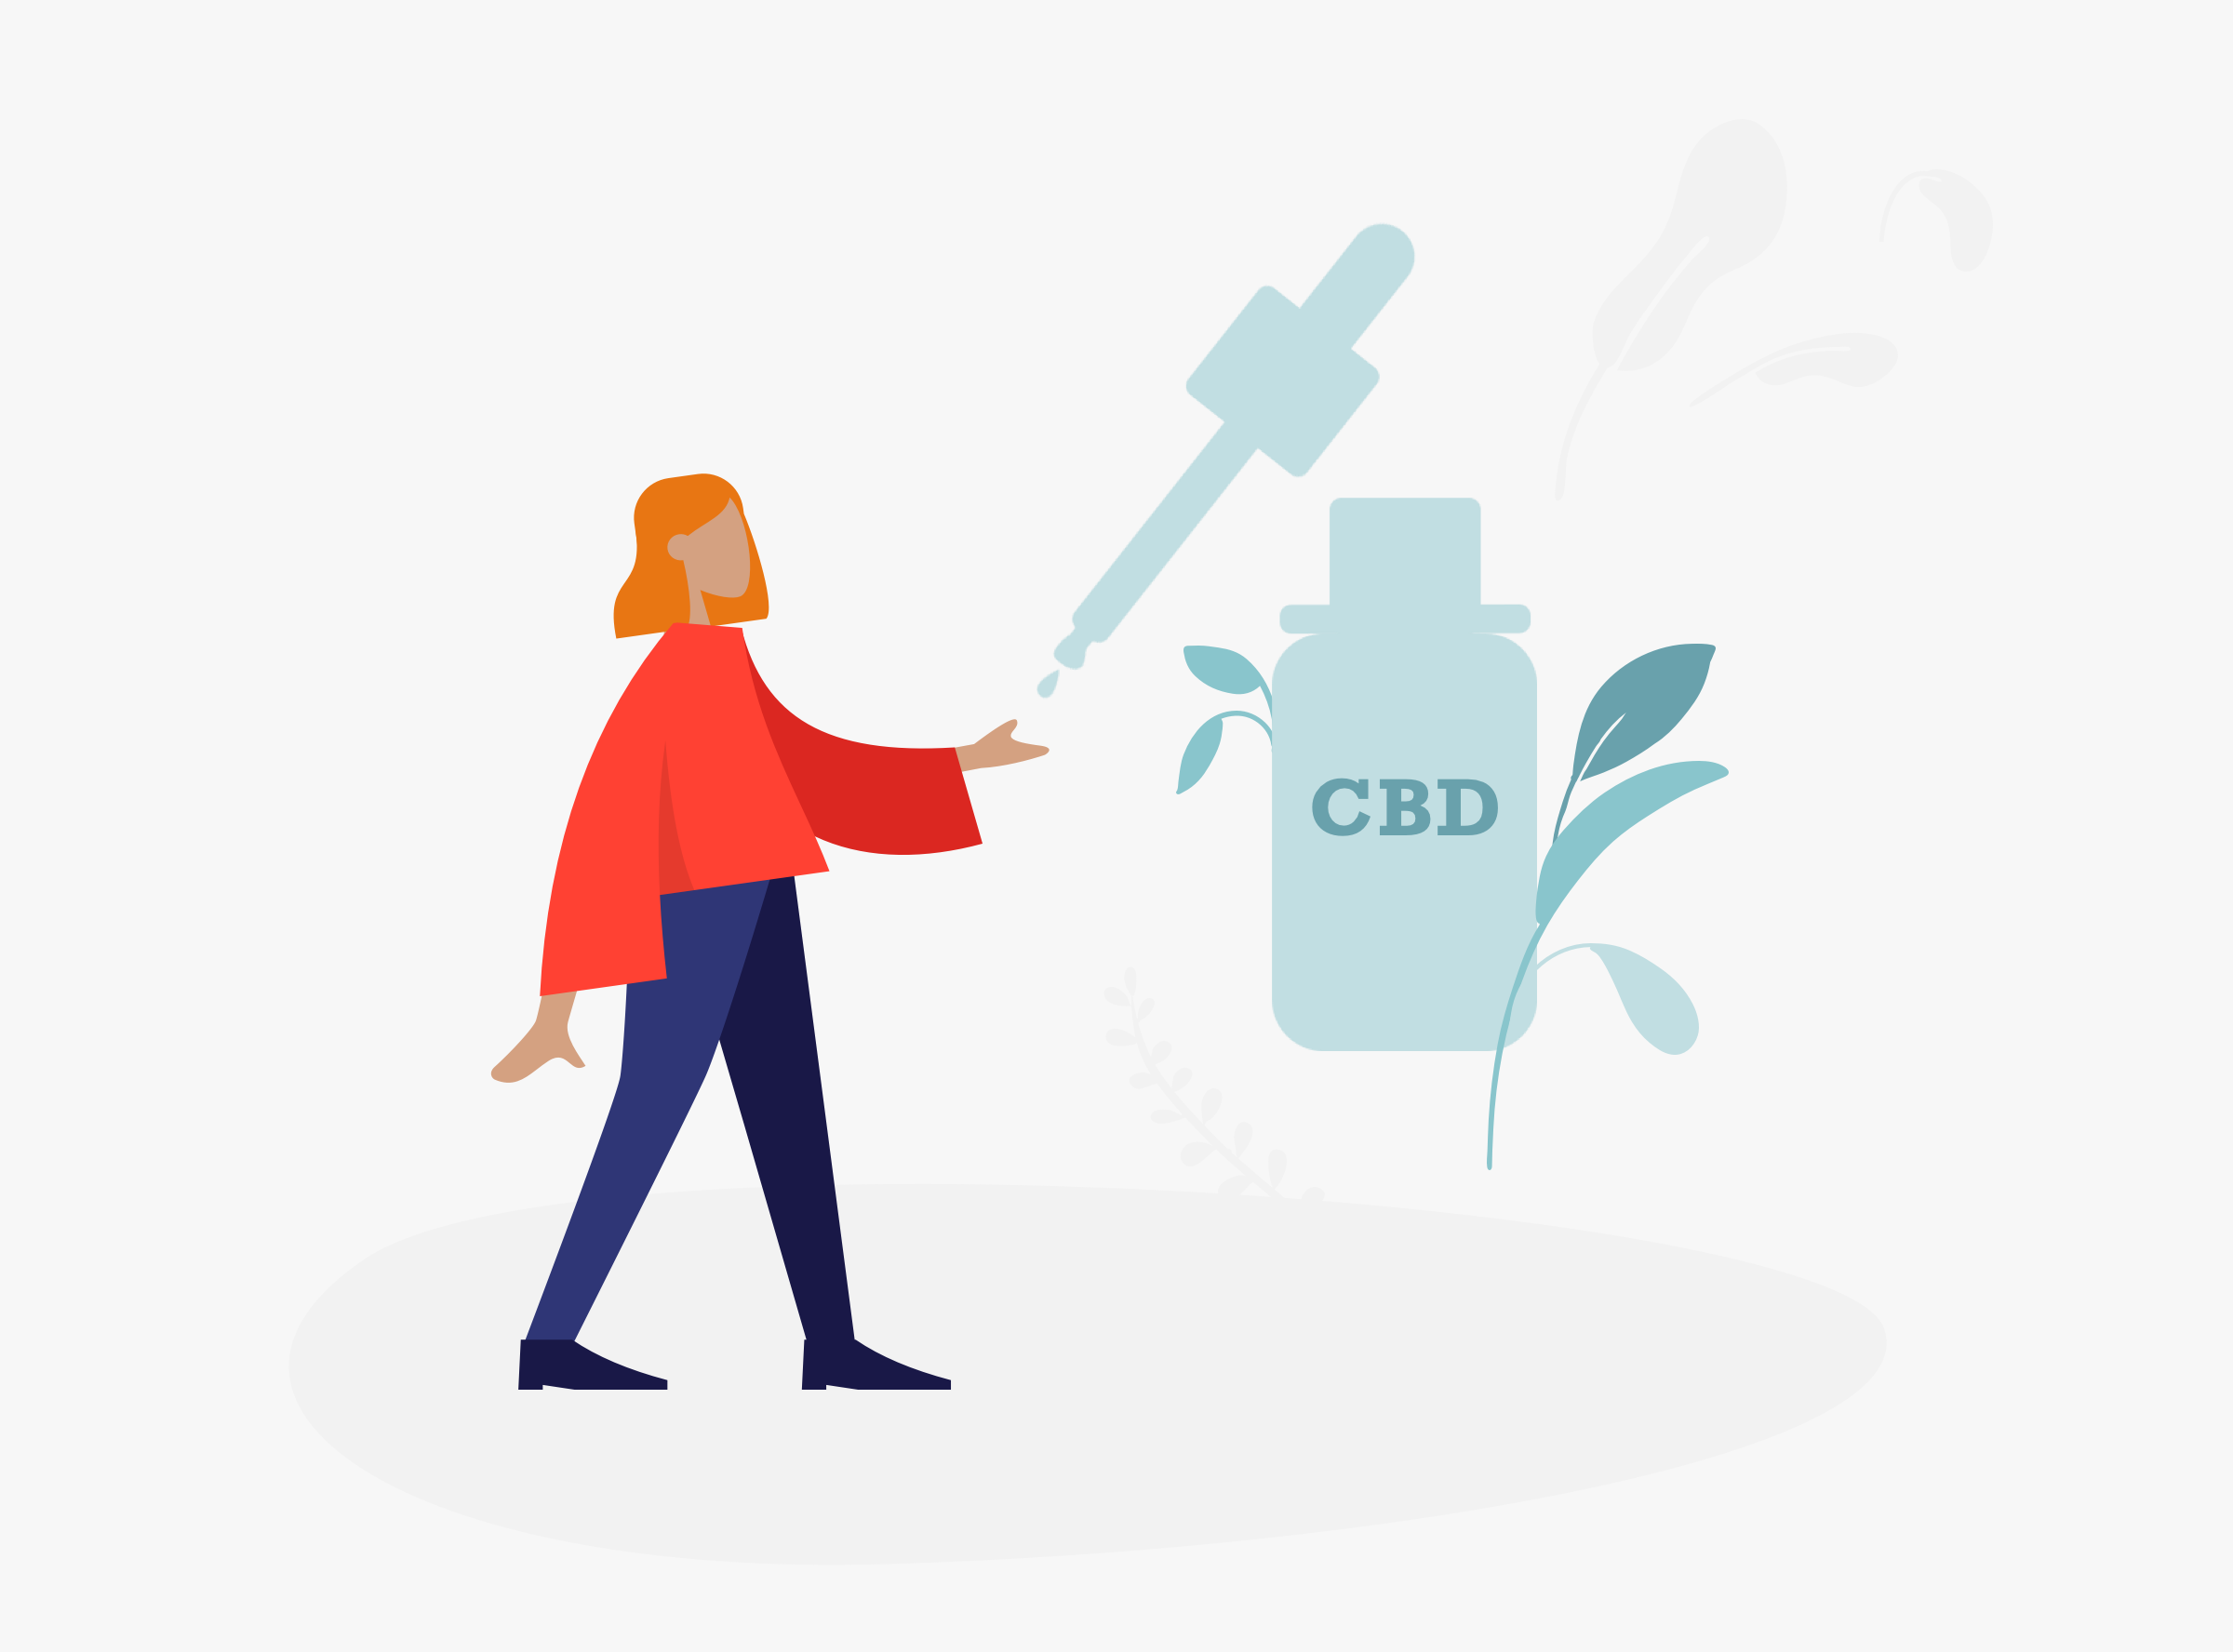 Illustration showing CBD oil bottle pippet dropping CBD oil into someones hand